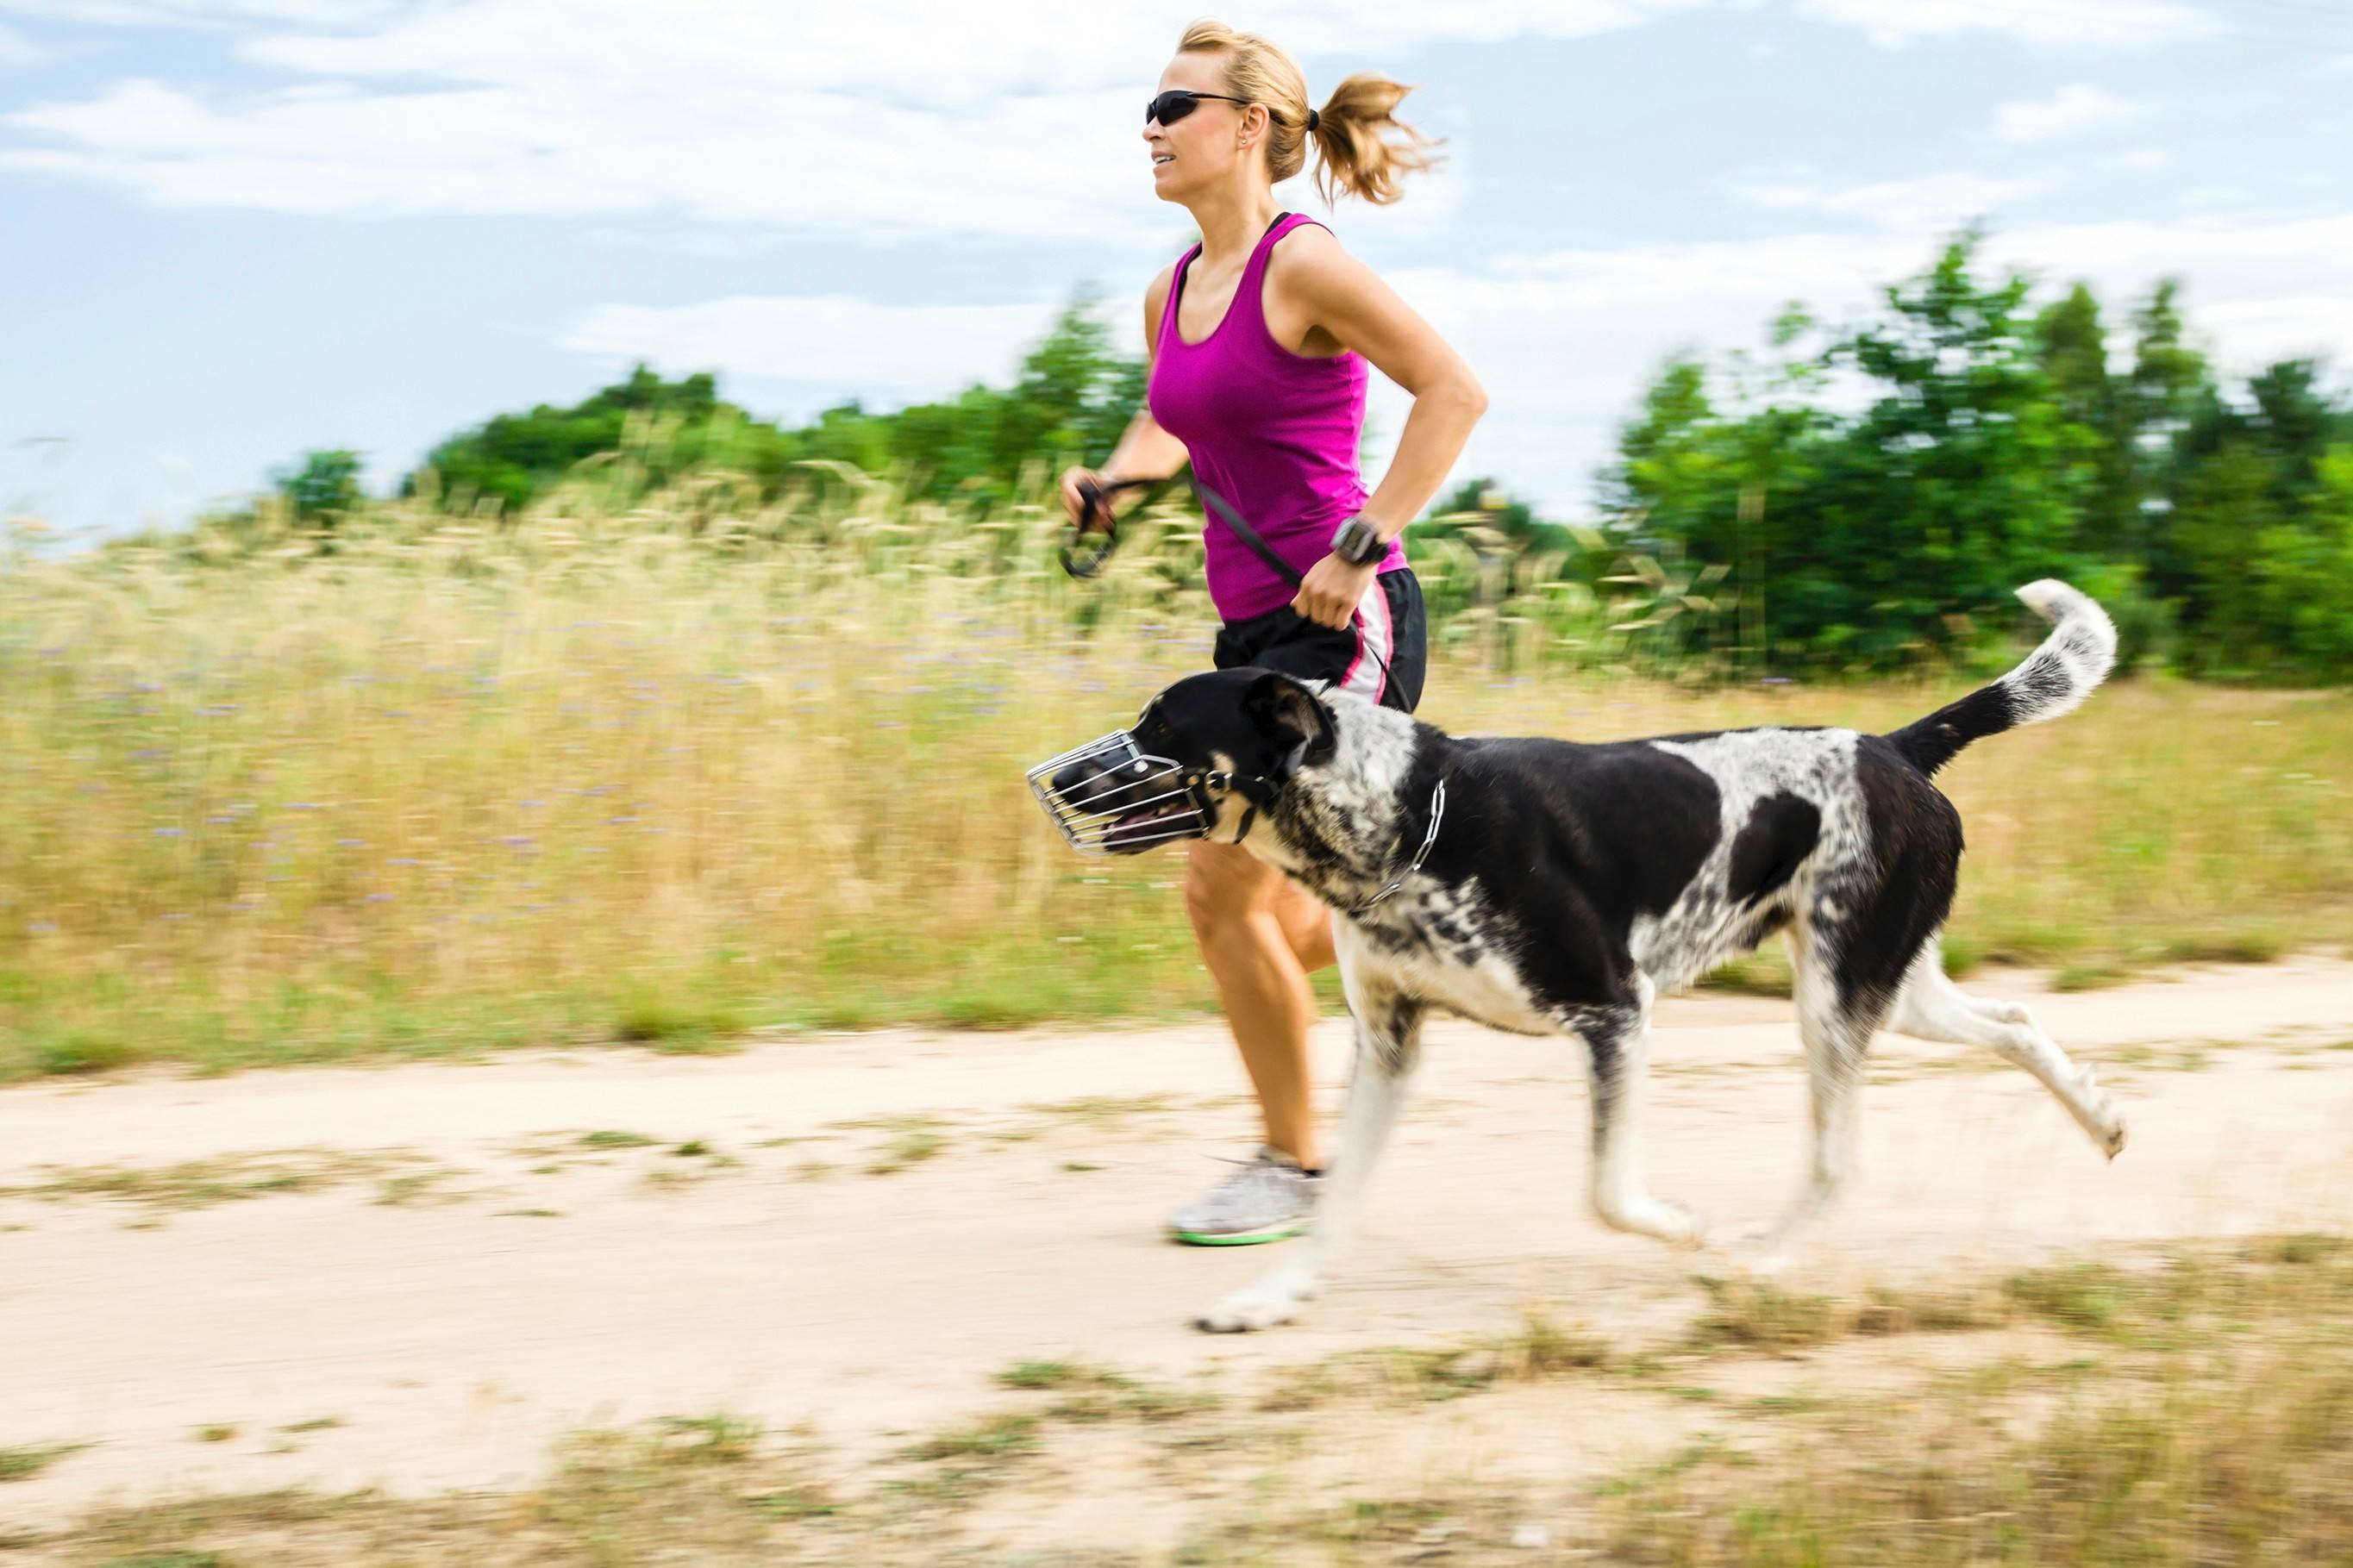 Some dogs can be great running companions, but some breeds are better left at home.